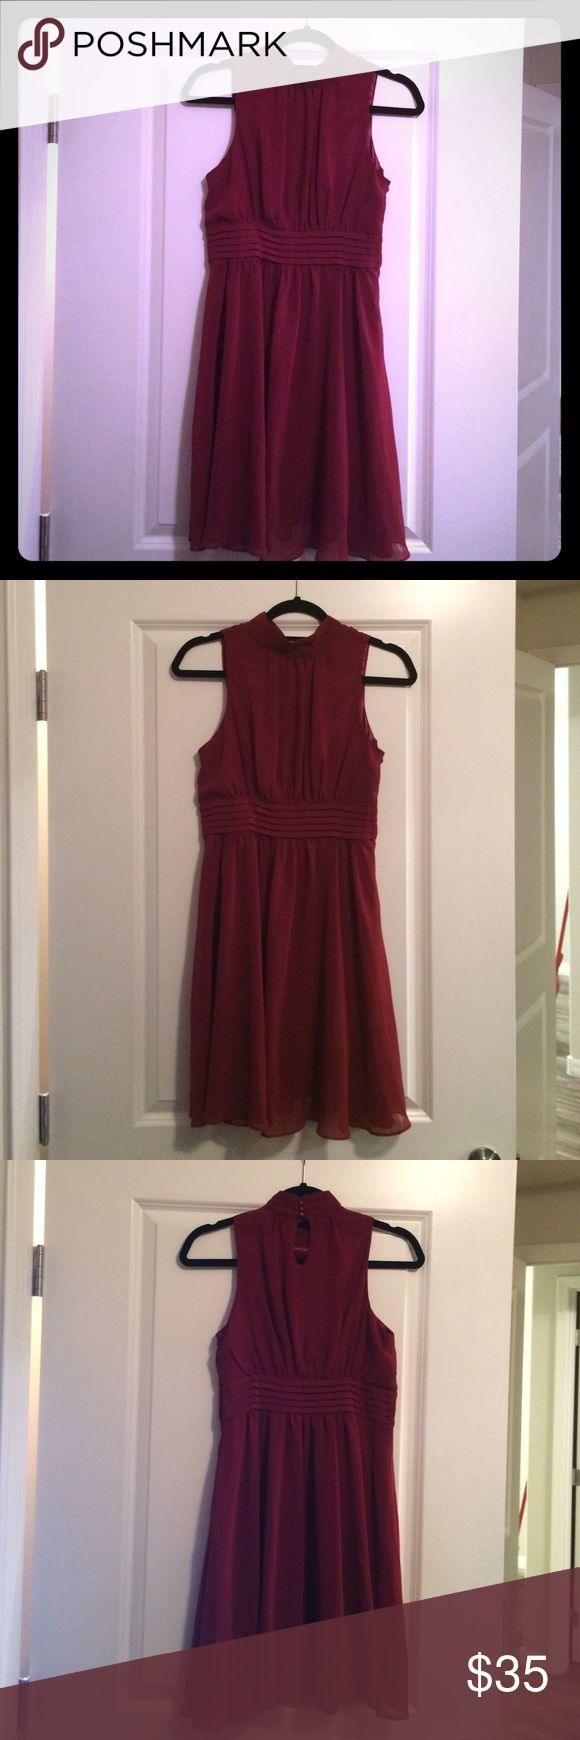 Red wine colored dress High collar red wine dress; worn once ModCloth Dresses